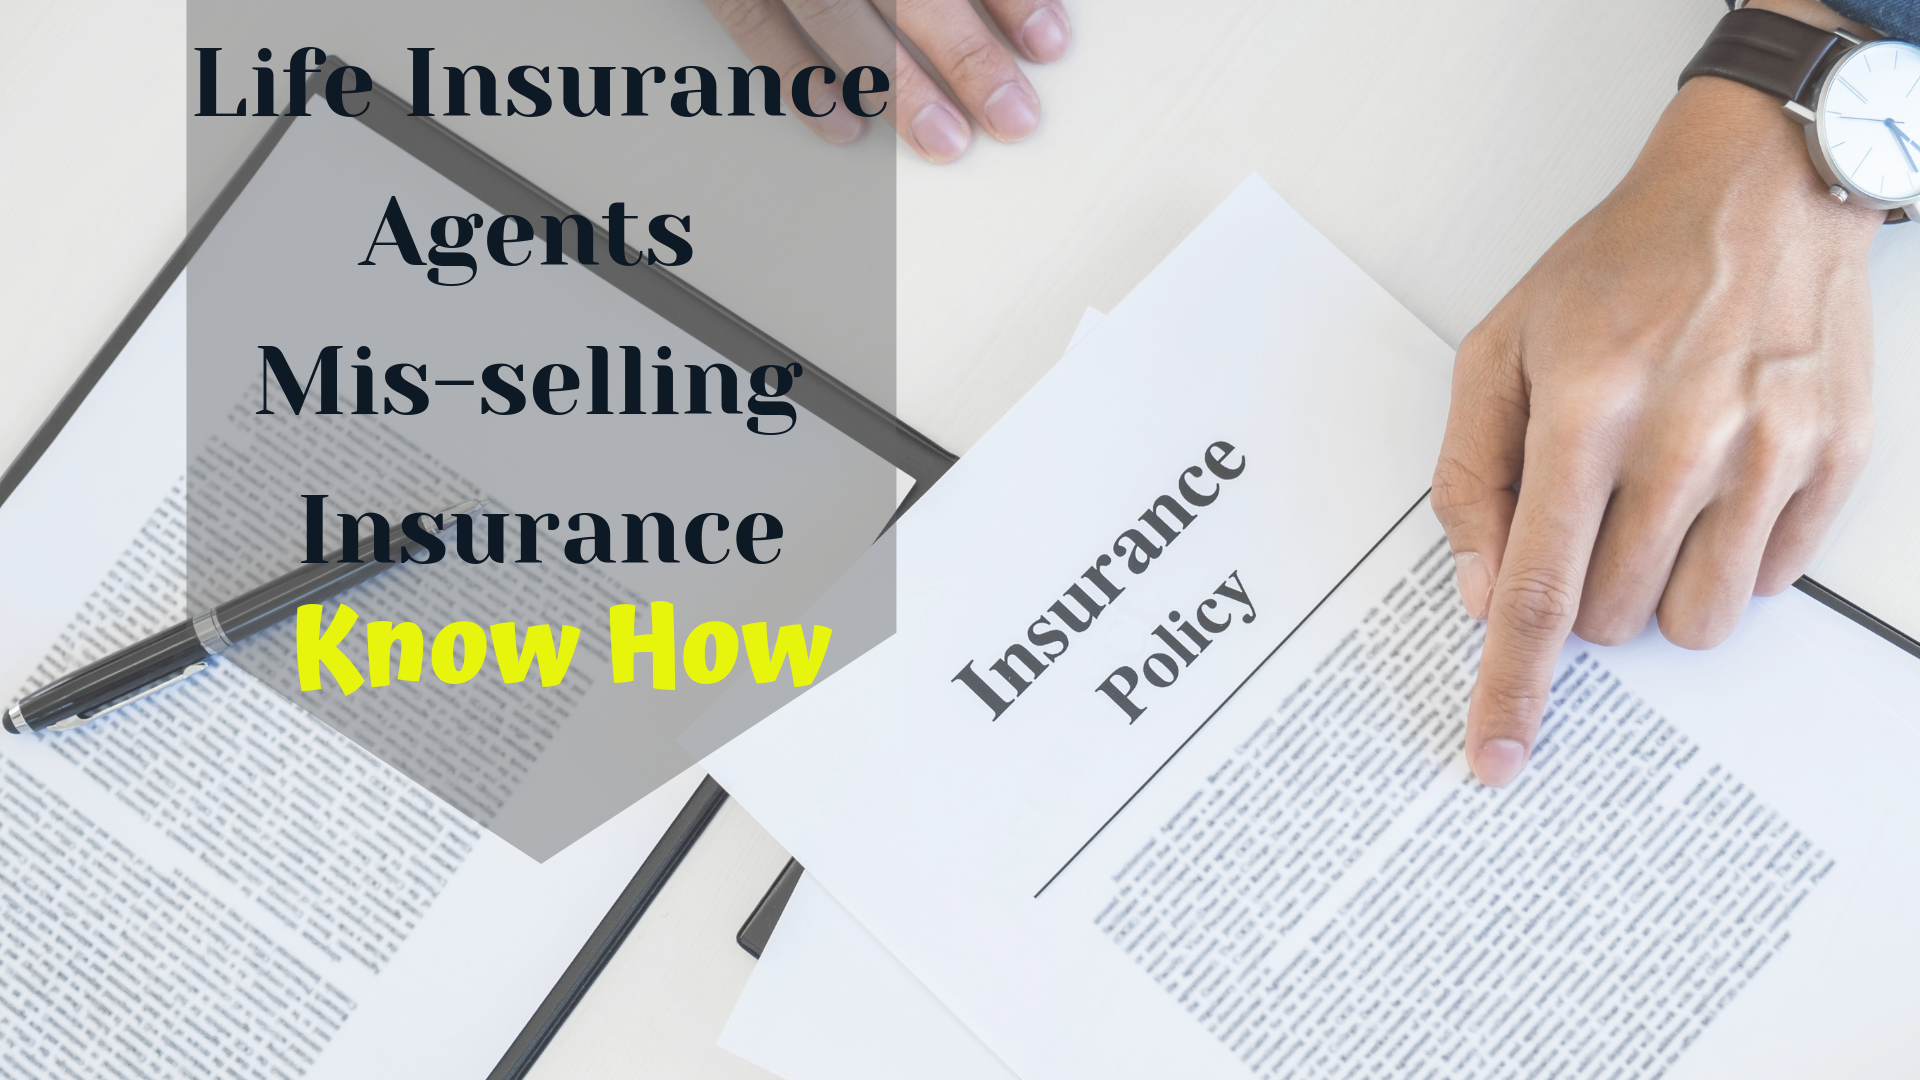 How life insurance agents are mis-selling Insurance Policy